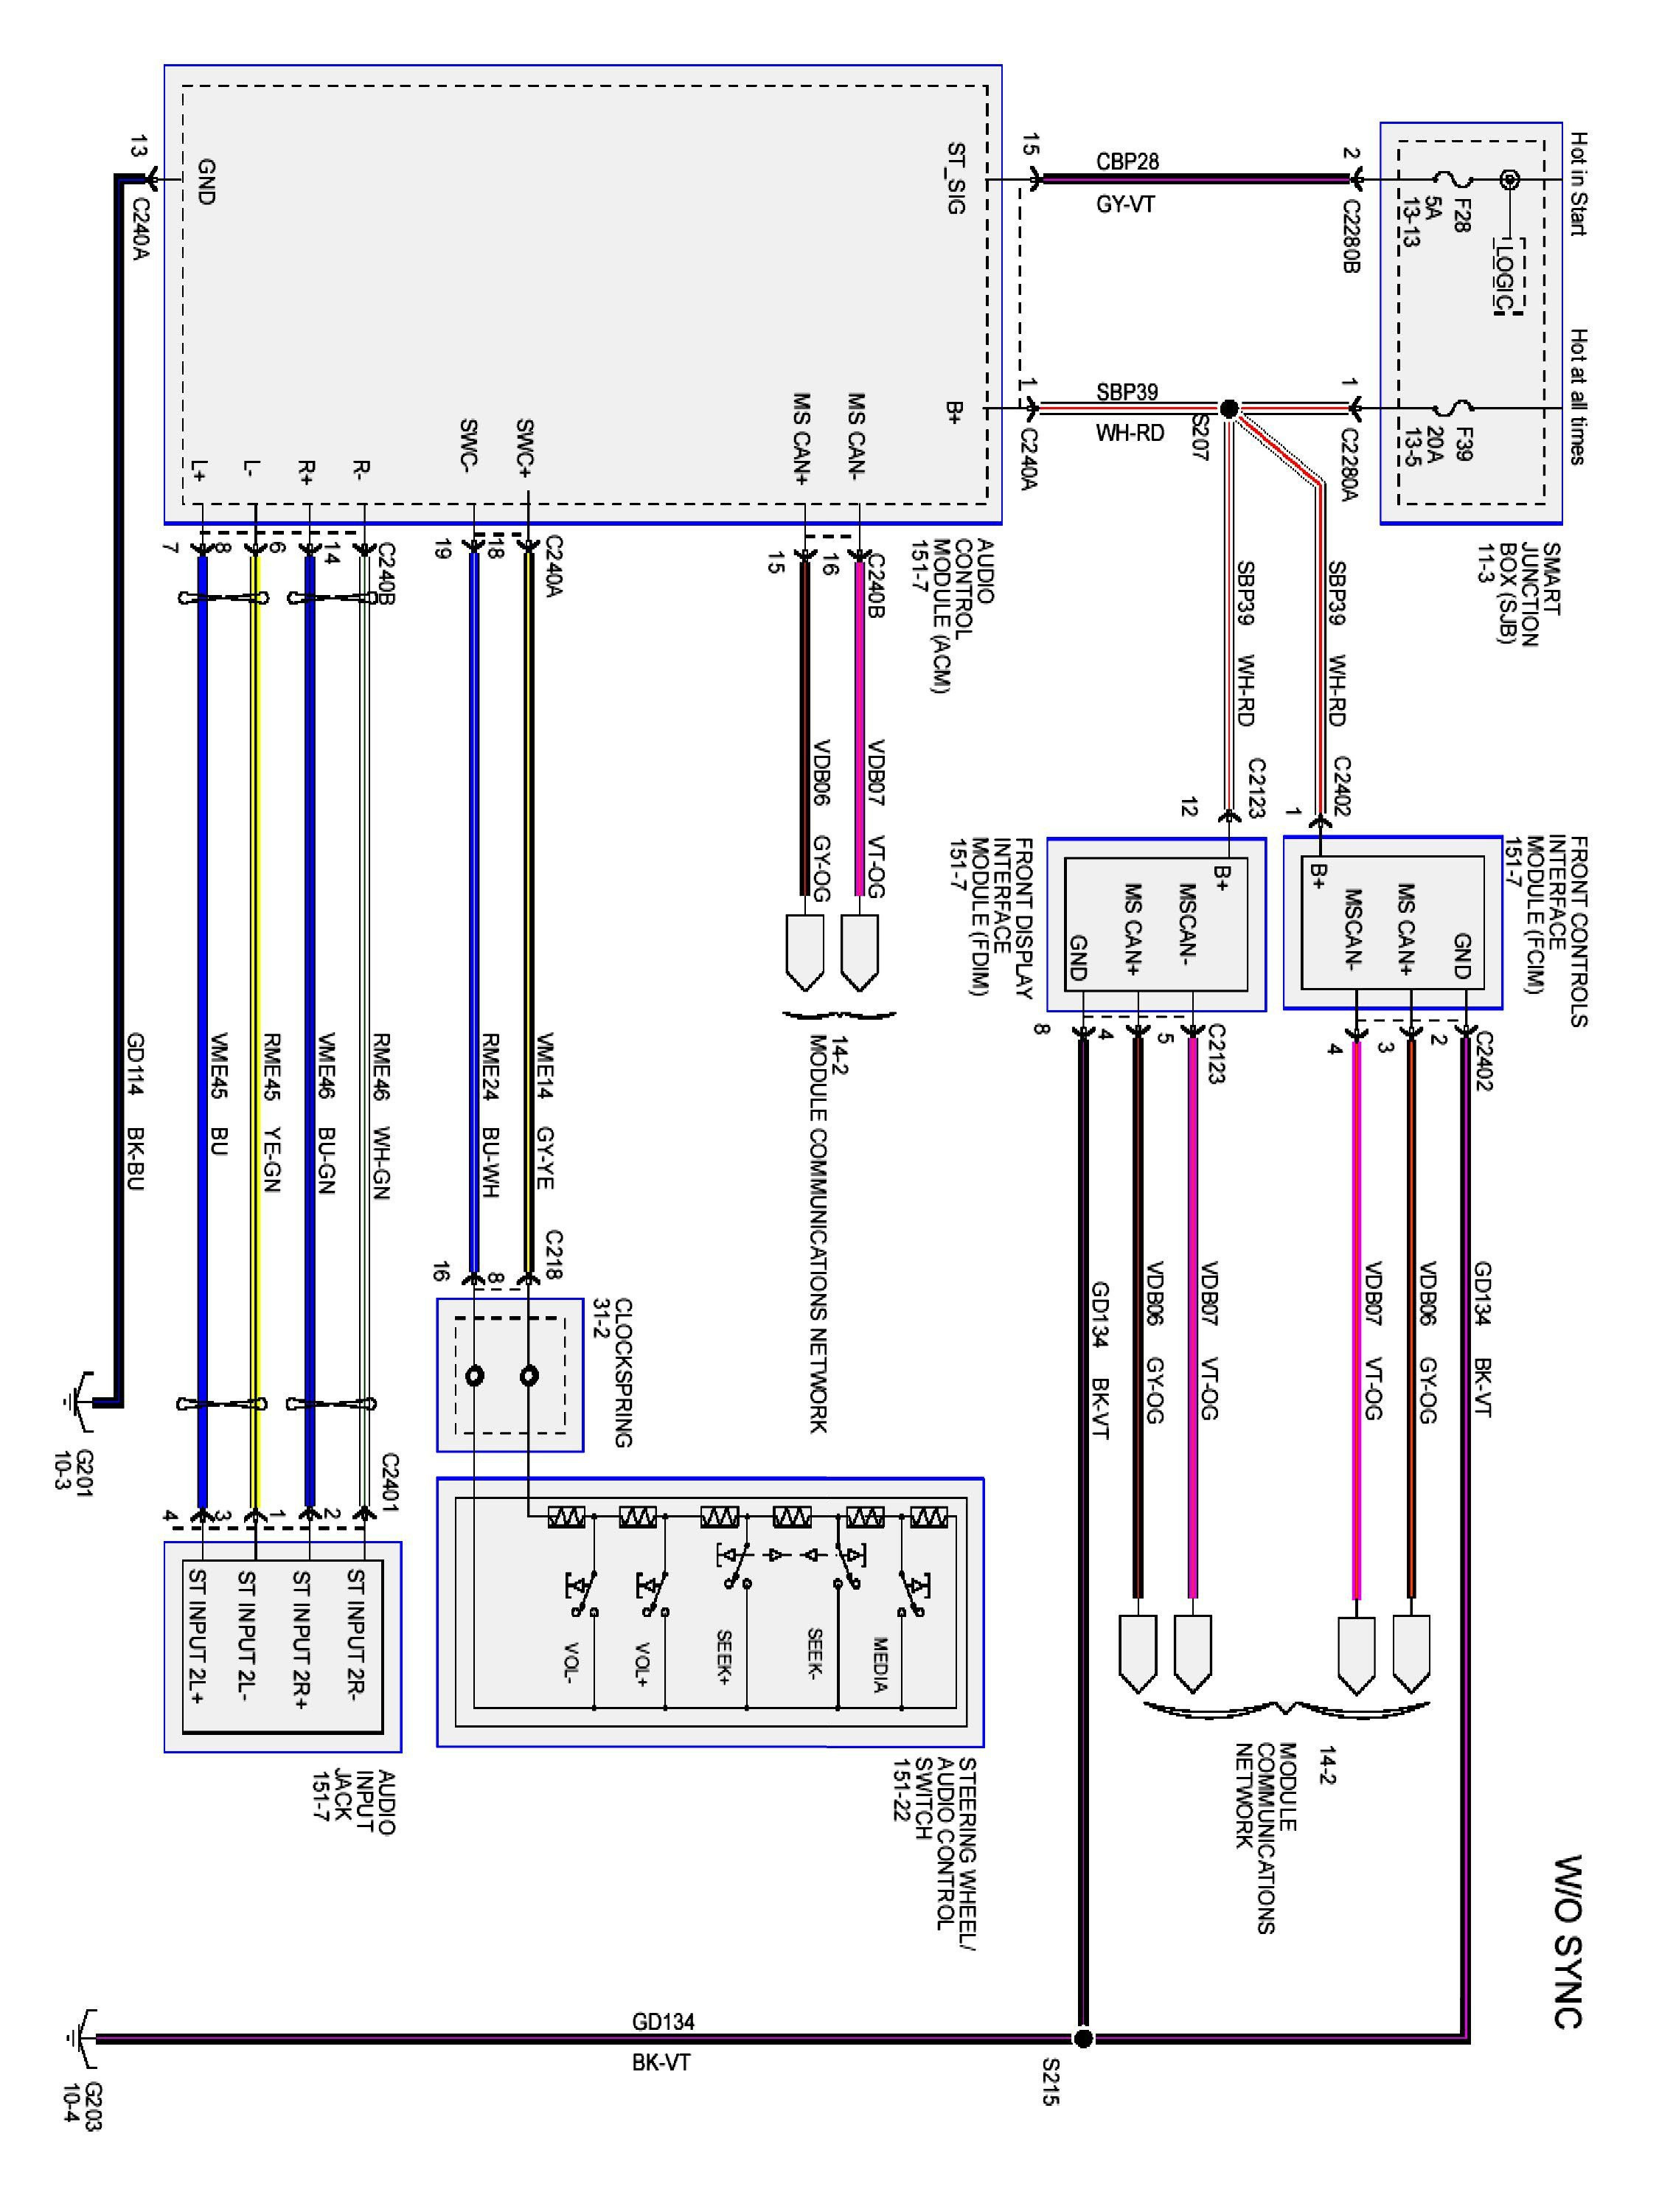 1998 Mitsubishi Eclipse Radio Wiring Diagram - Fusebox and Wiring Diagram  cable-feign - cable-feign.modelrc.it | 1998 Mitsubishi Eclipse Engine Diagram Free Download |  | modelrc.it